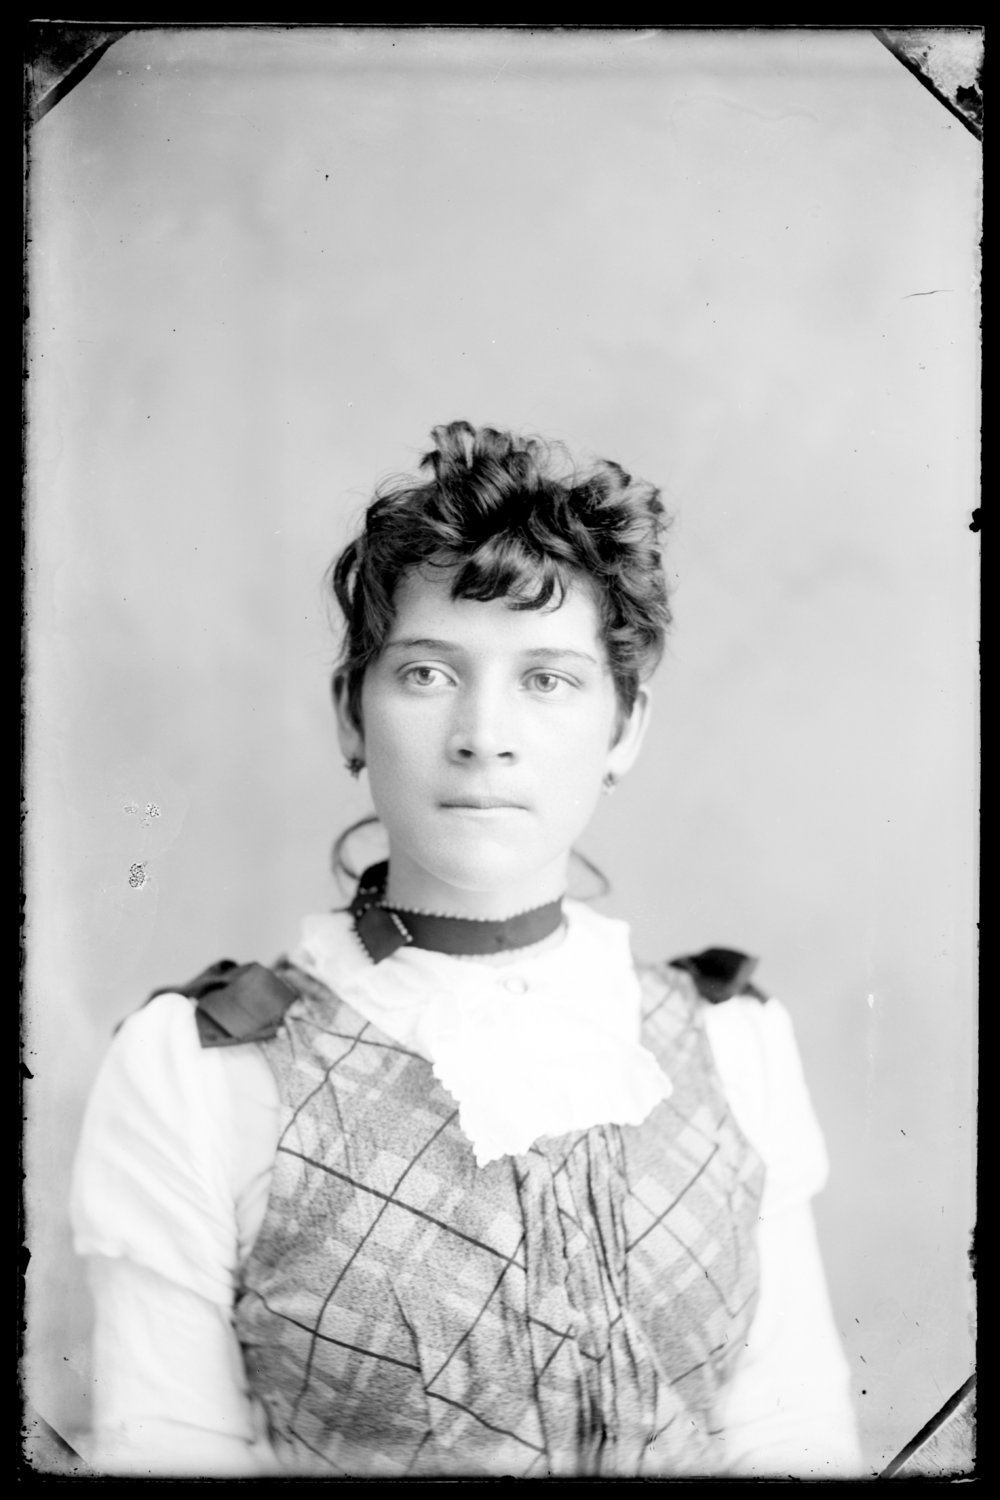 Michael A. Kennedy photo collection, St. Paul, Kansas - Portrait of Mary Jane (Kennedy) Long, sister of Michael A. Kennedy (2753)